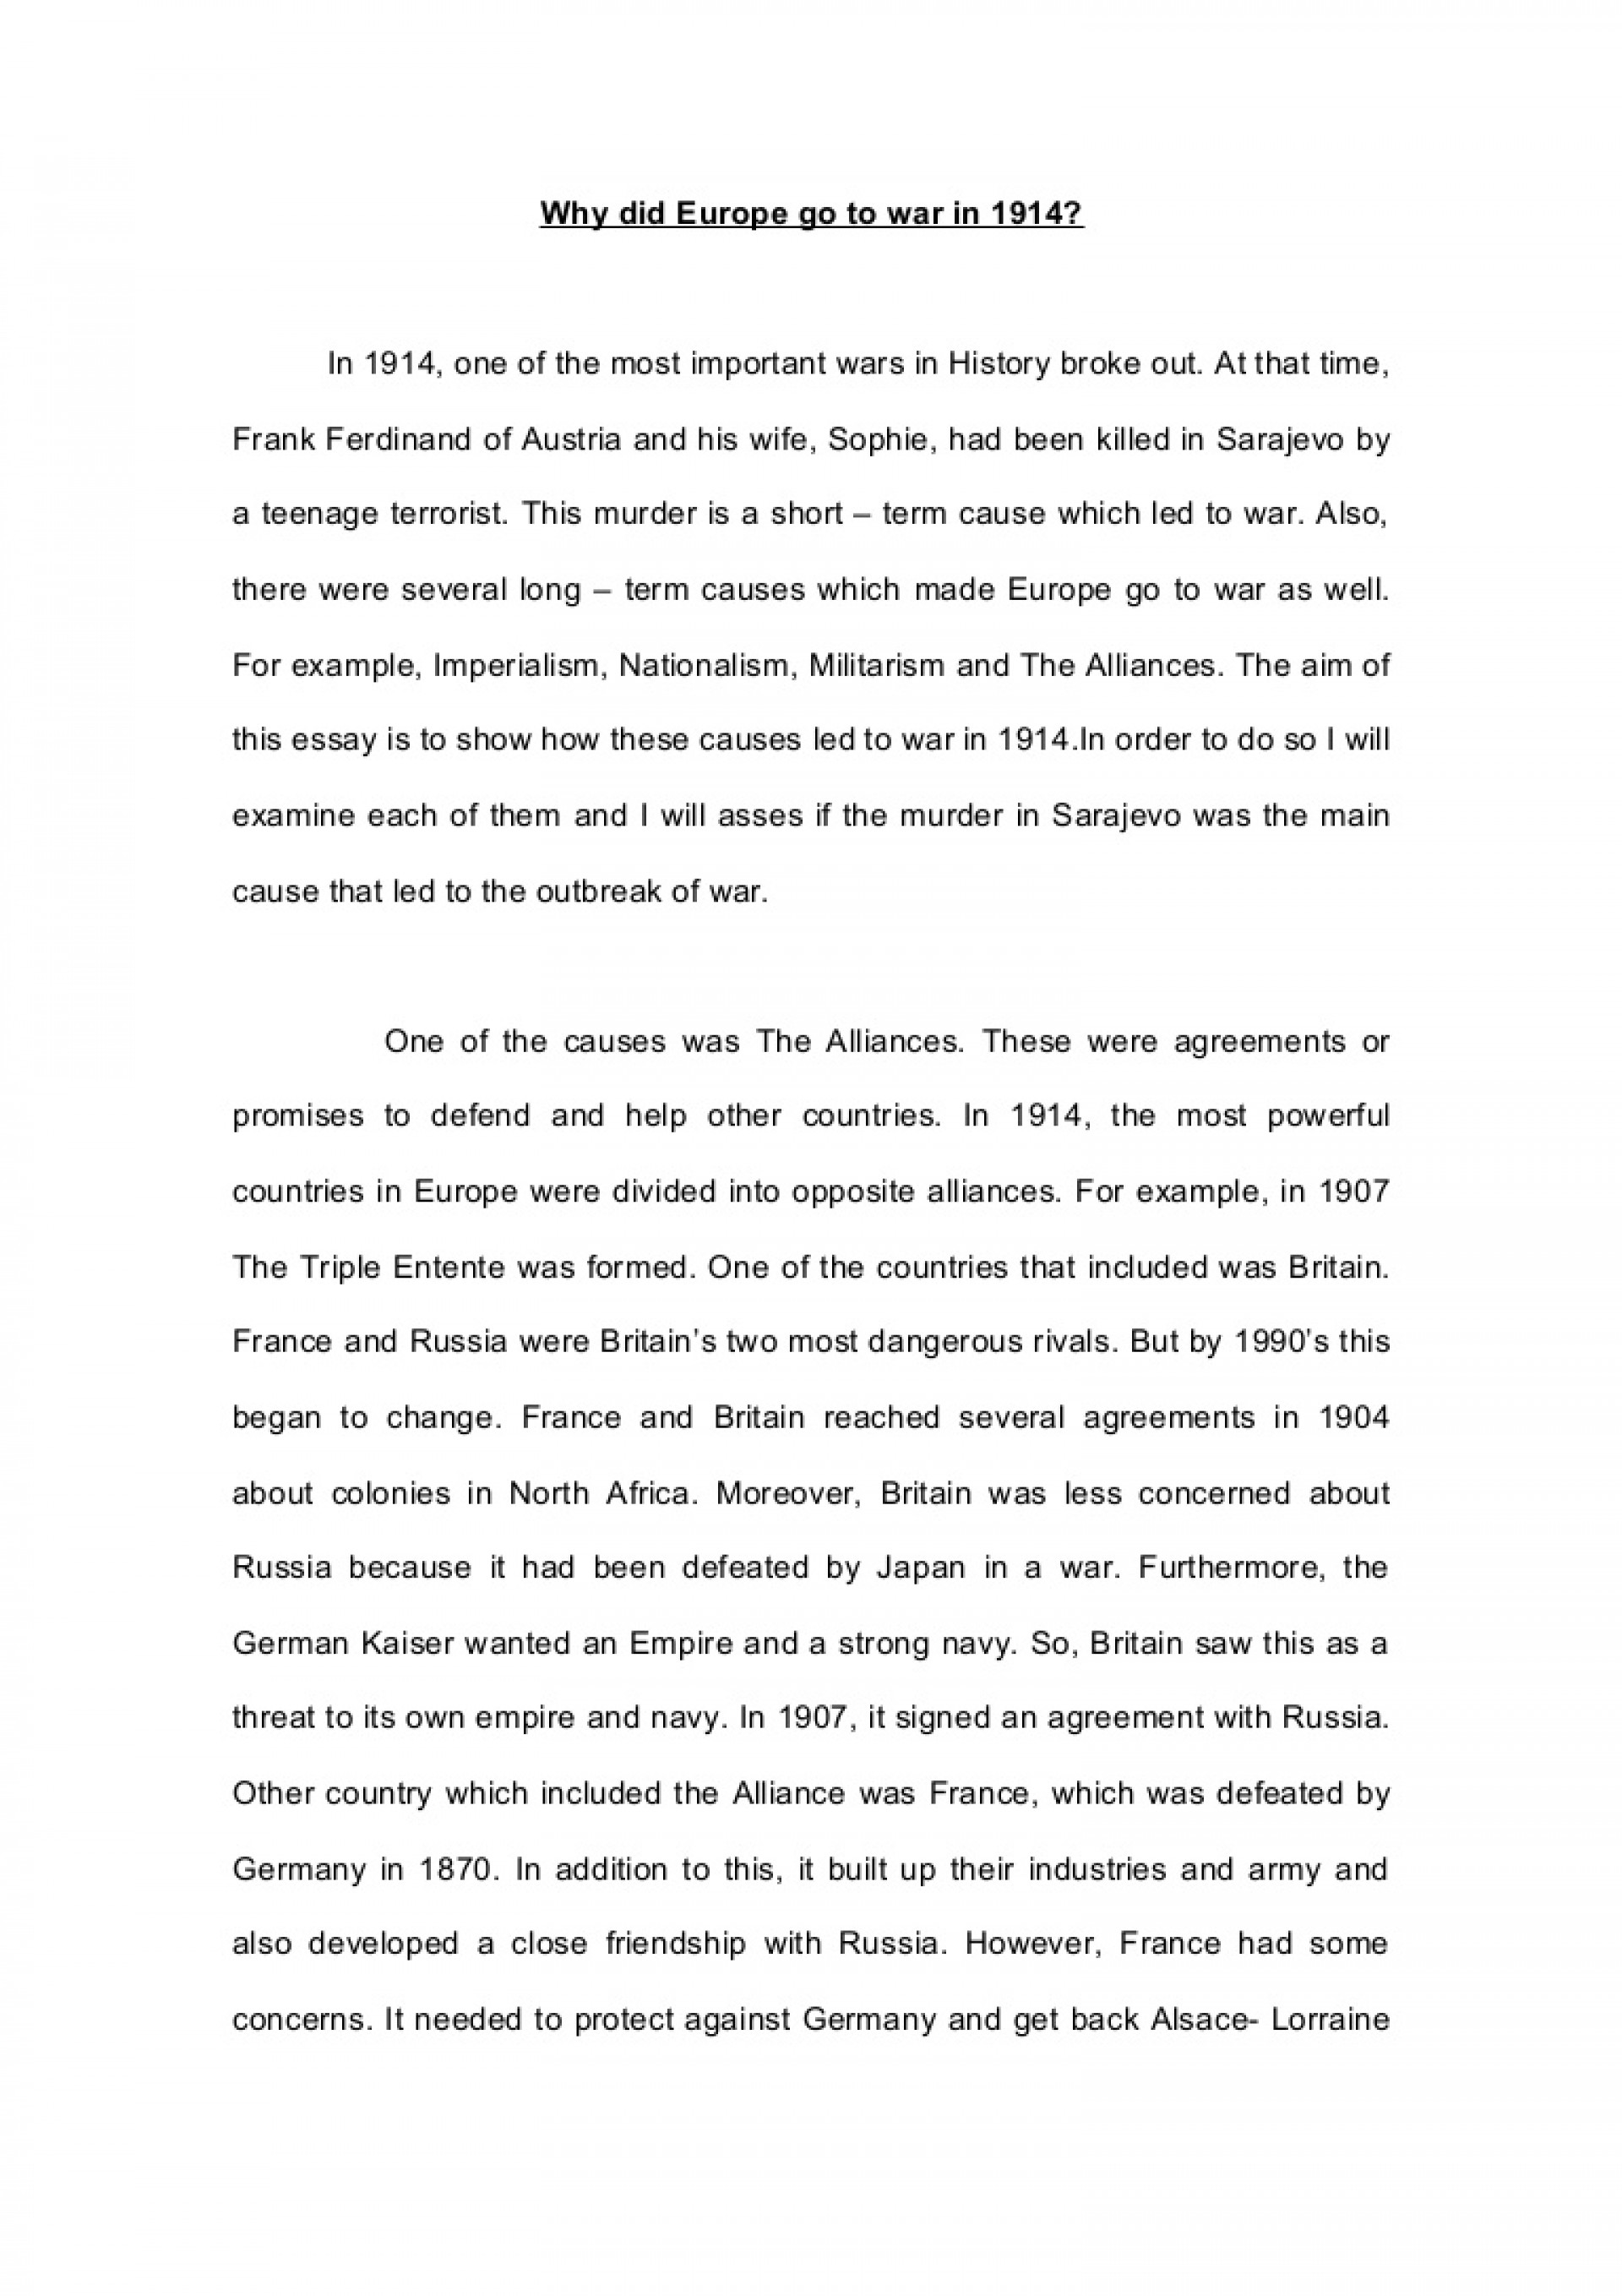 006 Essay Example Whydideuropegotowarin1914essay Phpapp01 Thumbnail Bullying In Stunning Schools Ways To Reduce School Spm Persuasive Cyber 1920